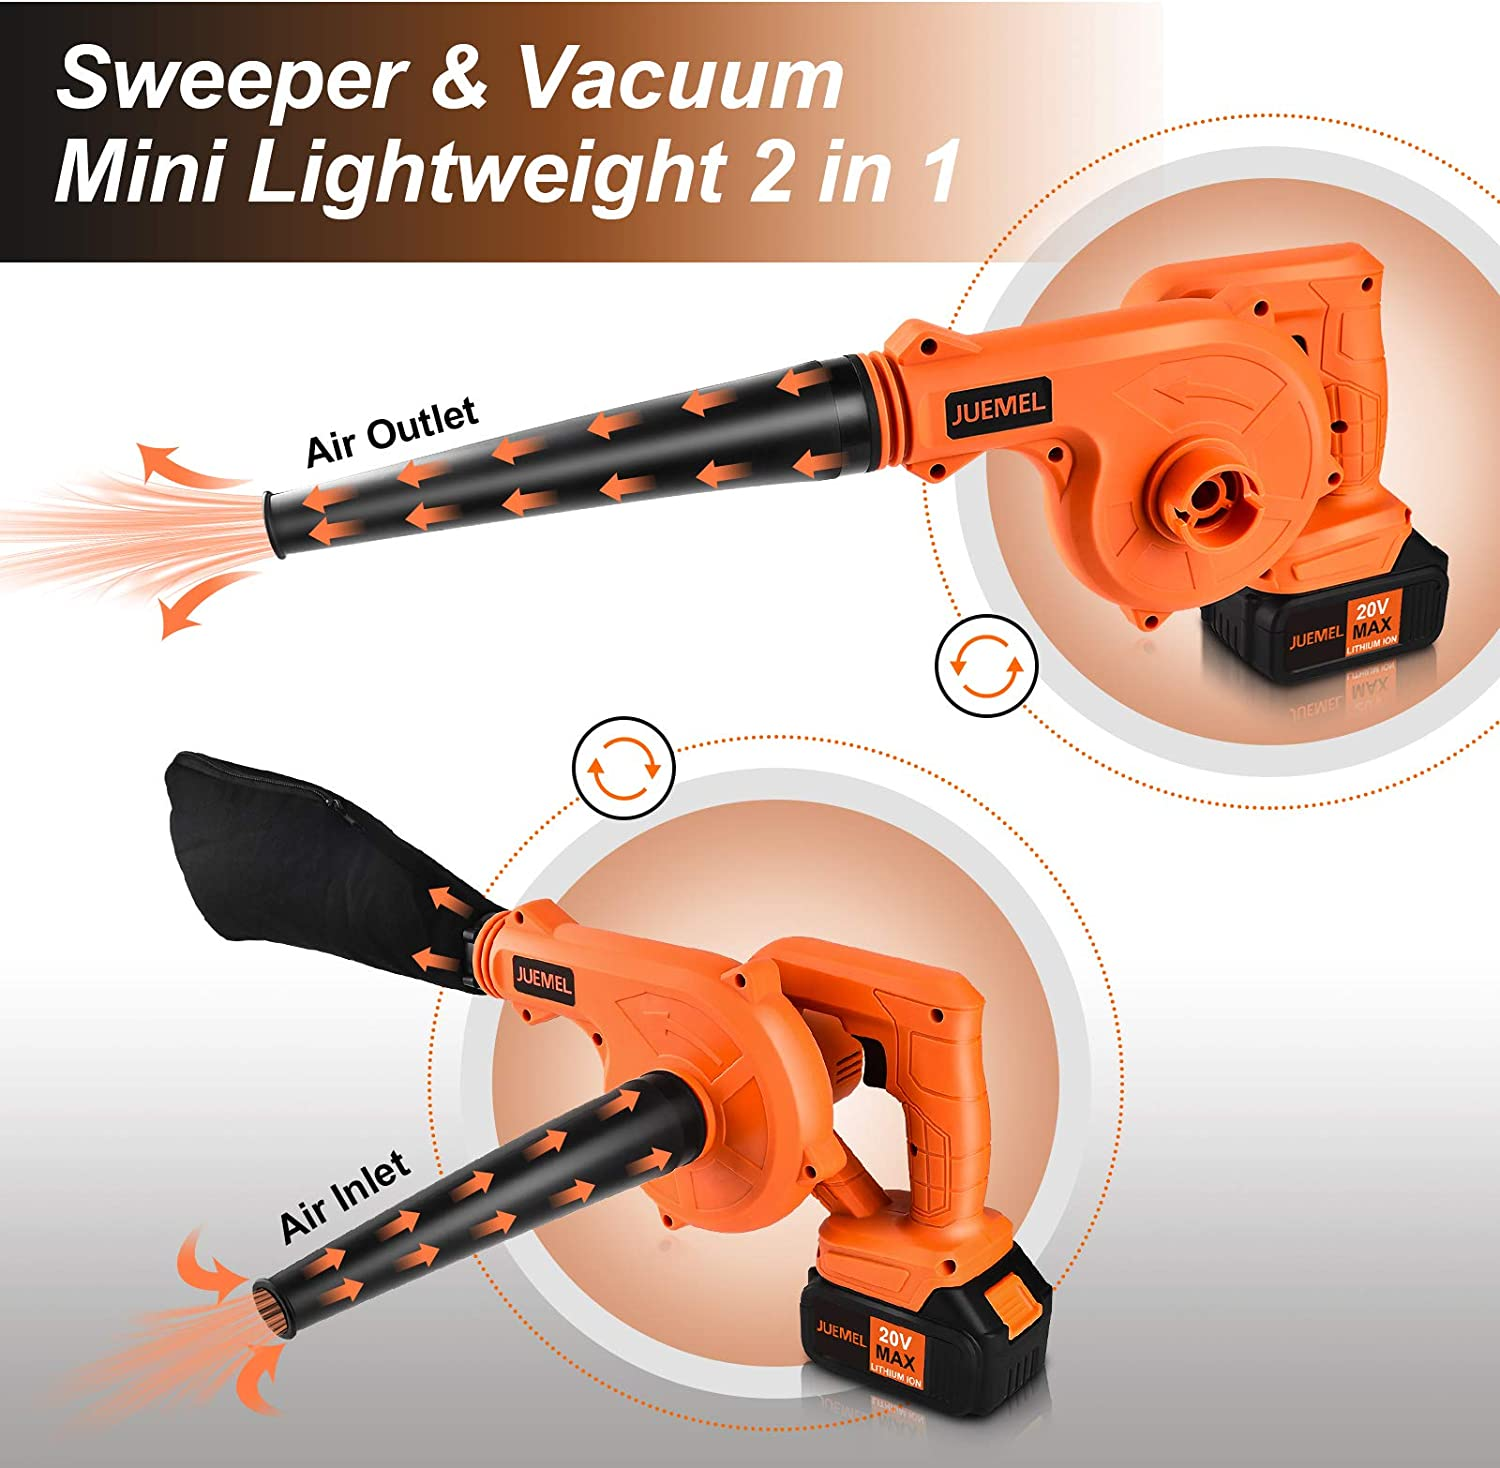 Leaf Blower with Battery,2 in 1 Sweeper//Vacuum Electric Leaf Blower for Yard Cleaning//Computer Host//Hard to Clean Corner JUEMEL 20V Cordless Leaf Blower